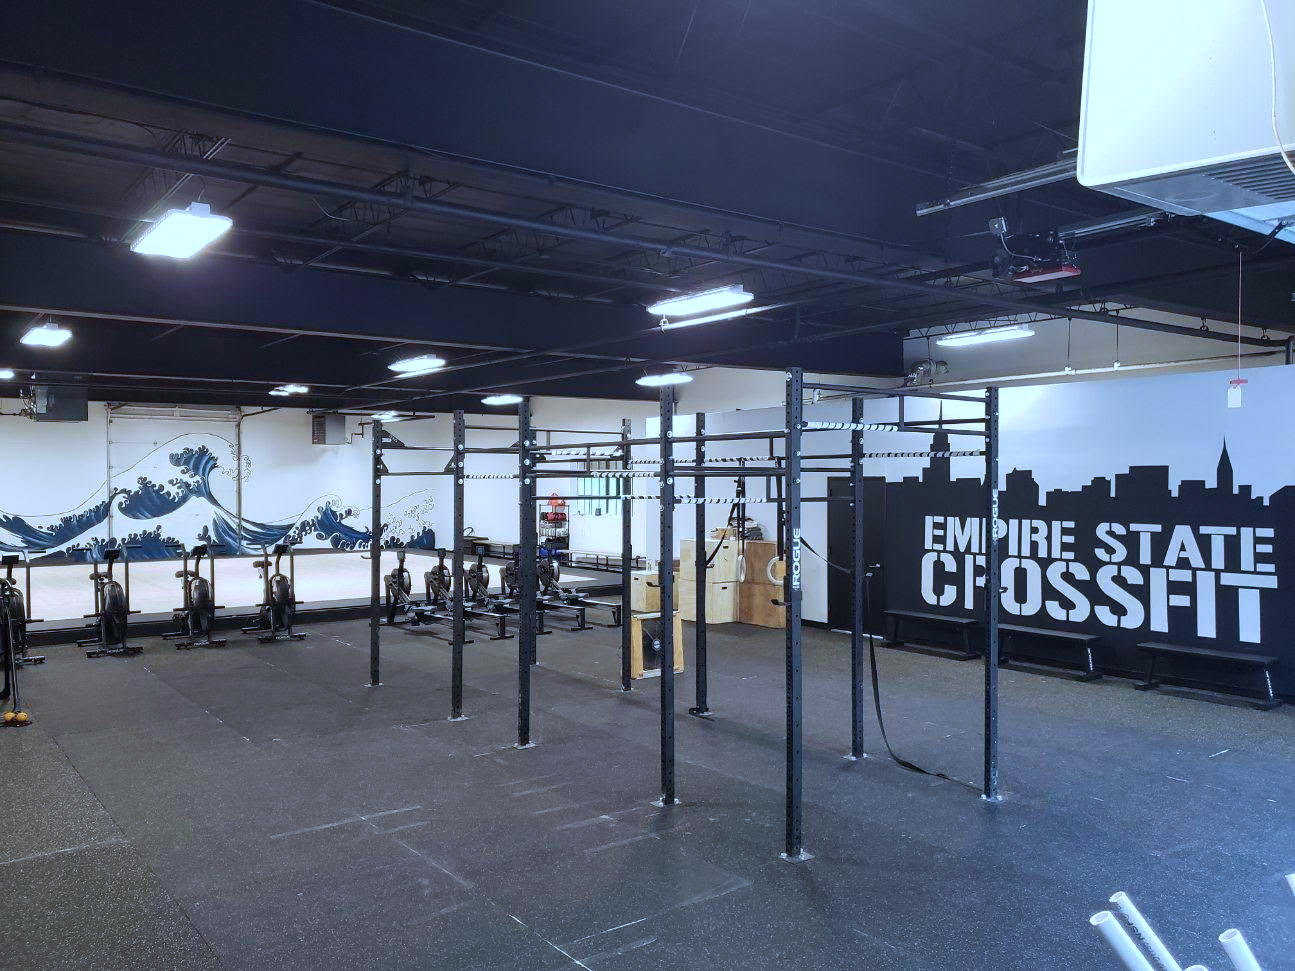 ESCFWhite Plains - > Empire State CrossFit has come to White Plains! The same quality product that's been around since 2010 has expanded to a new location.> Reduced membership for first 50 members. (Hurry, spots are filling quickly!)> Newly renovated facility that includes:* Men's and Women's locker rooms (with 2 showers each)* FREE Street Parking* Located half a mile from the White Plains train station and even closer to I-287 and the Bronx River Pkwy.